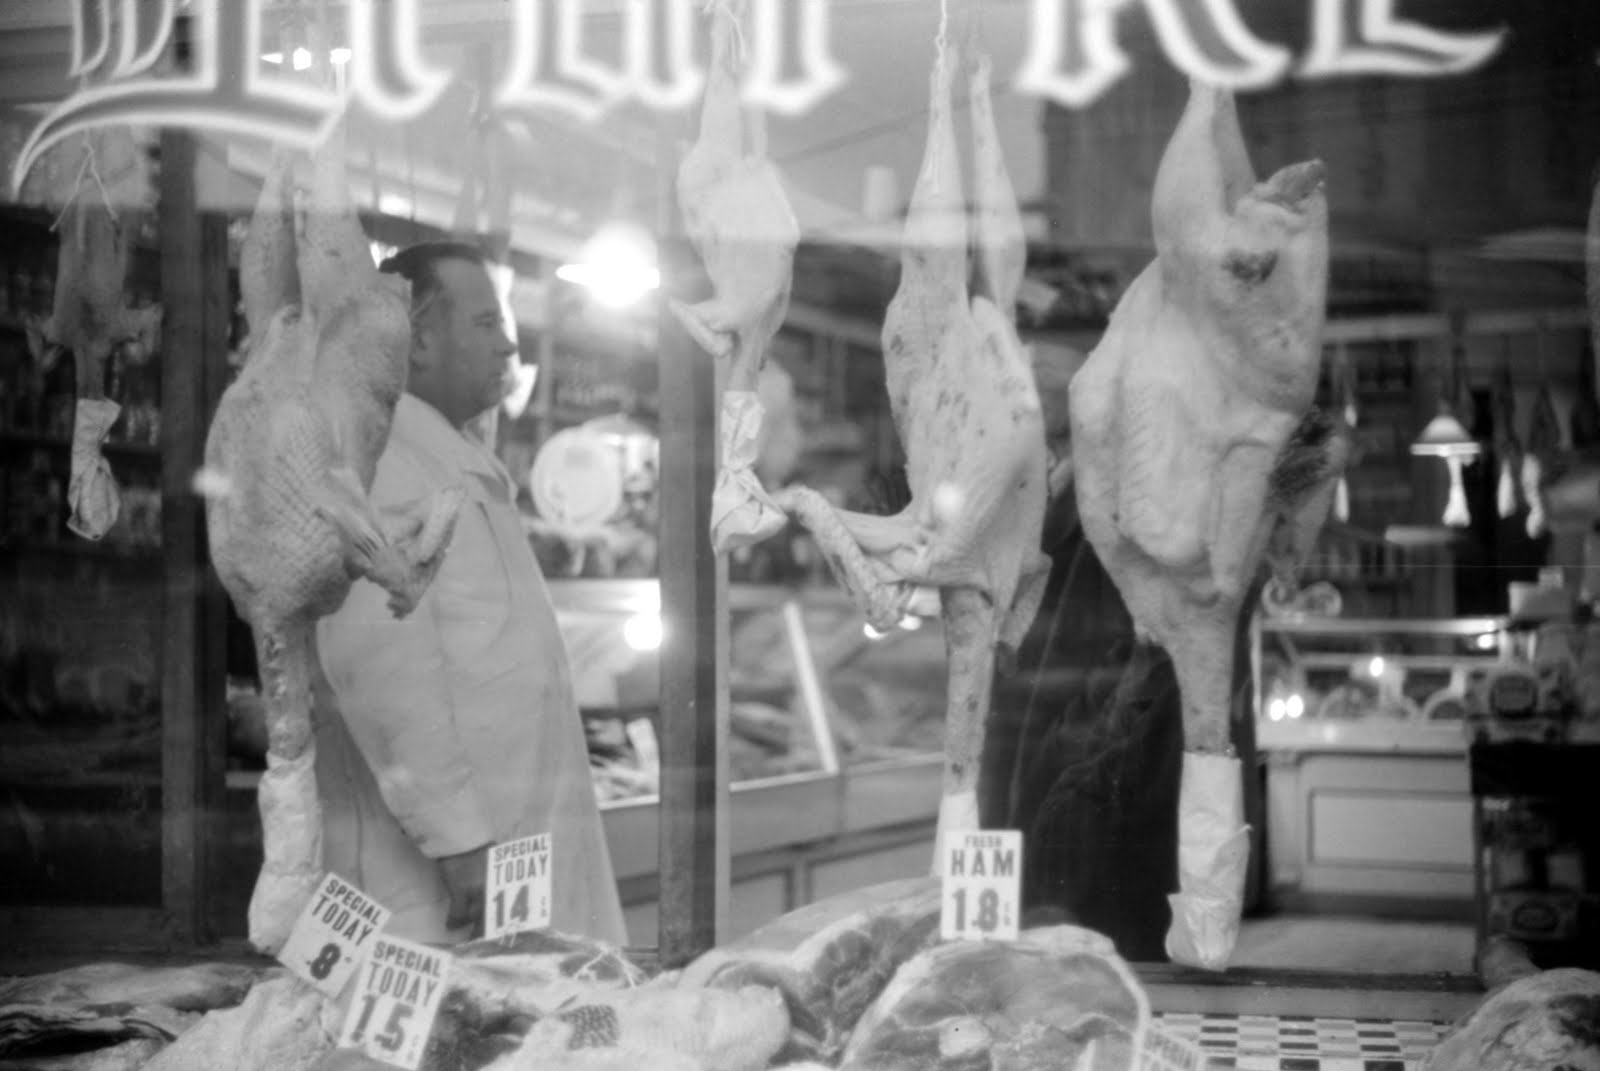 A butcher shop window at Thanksgiving time